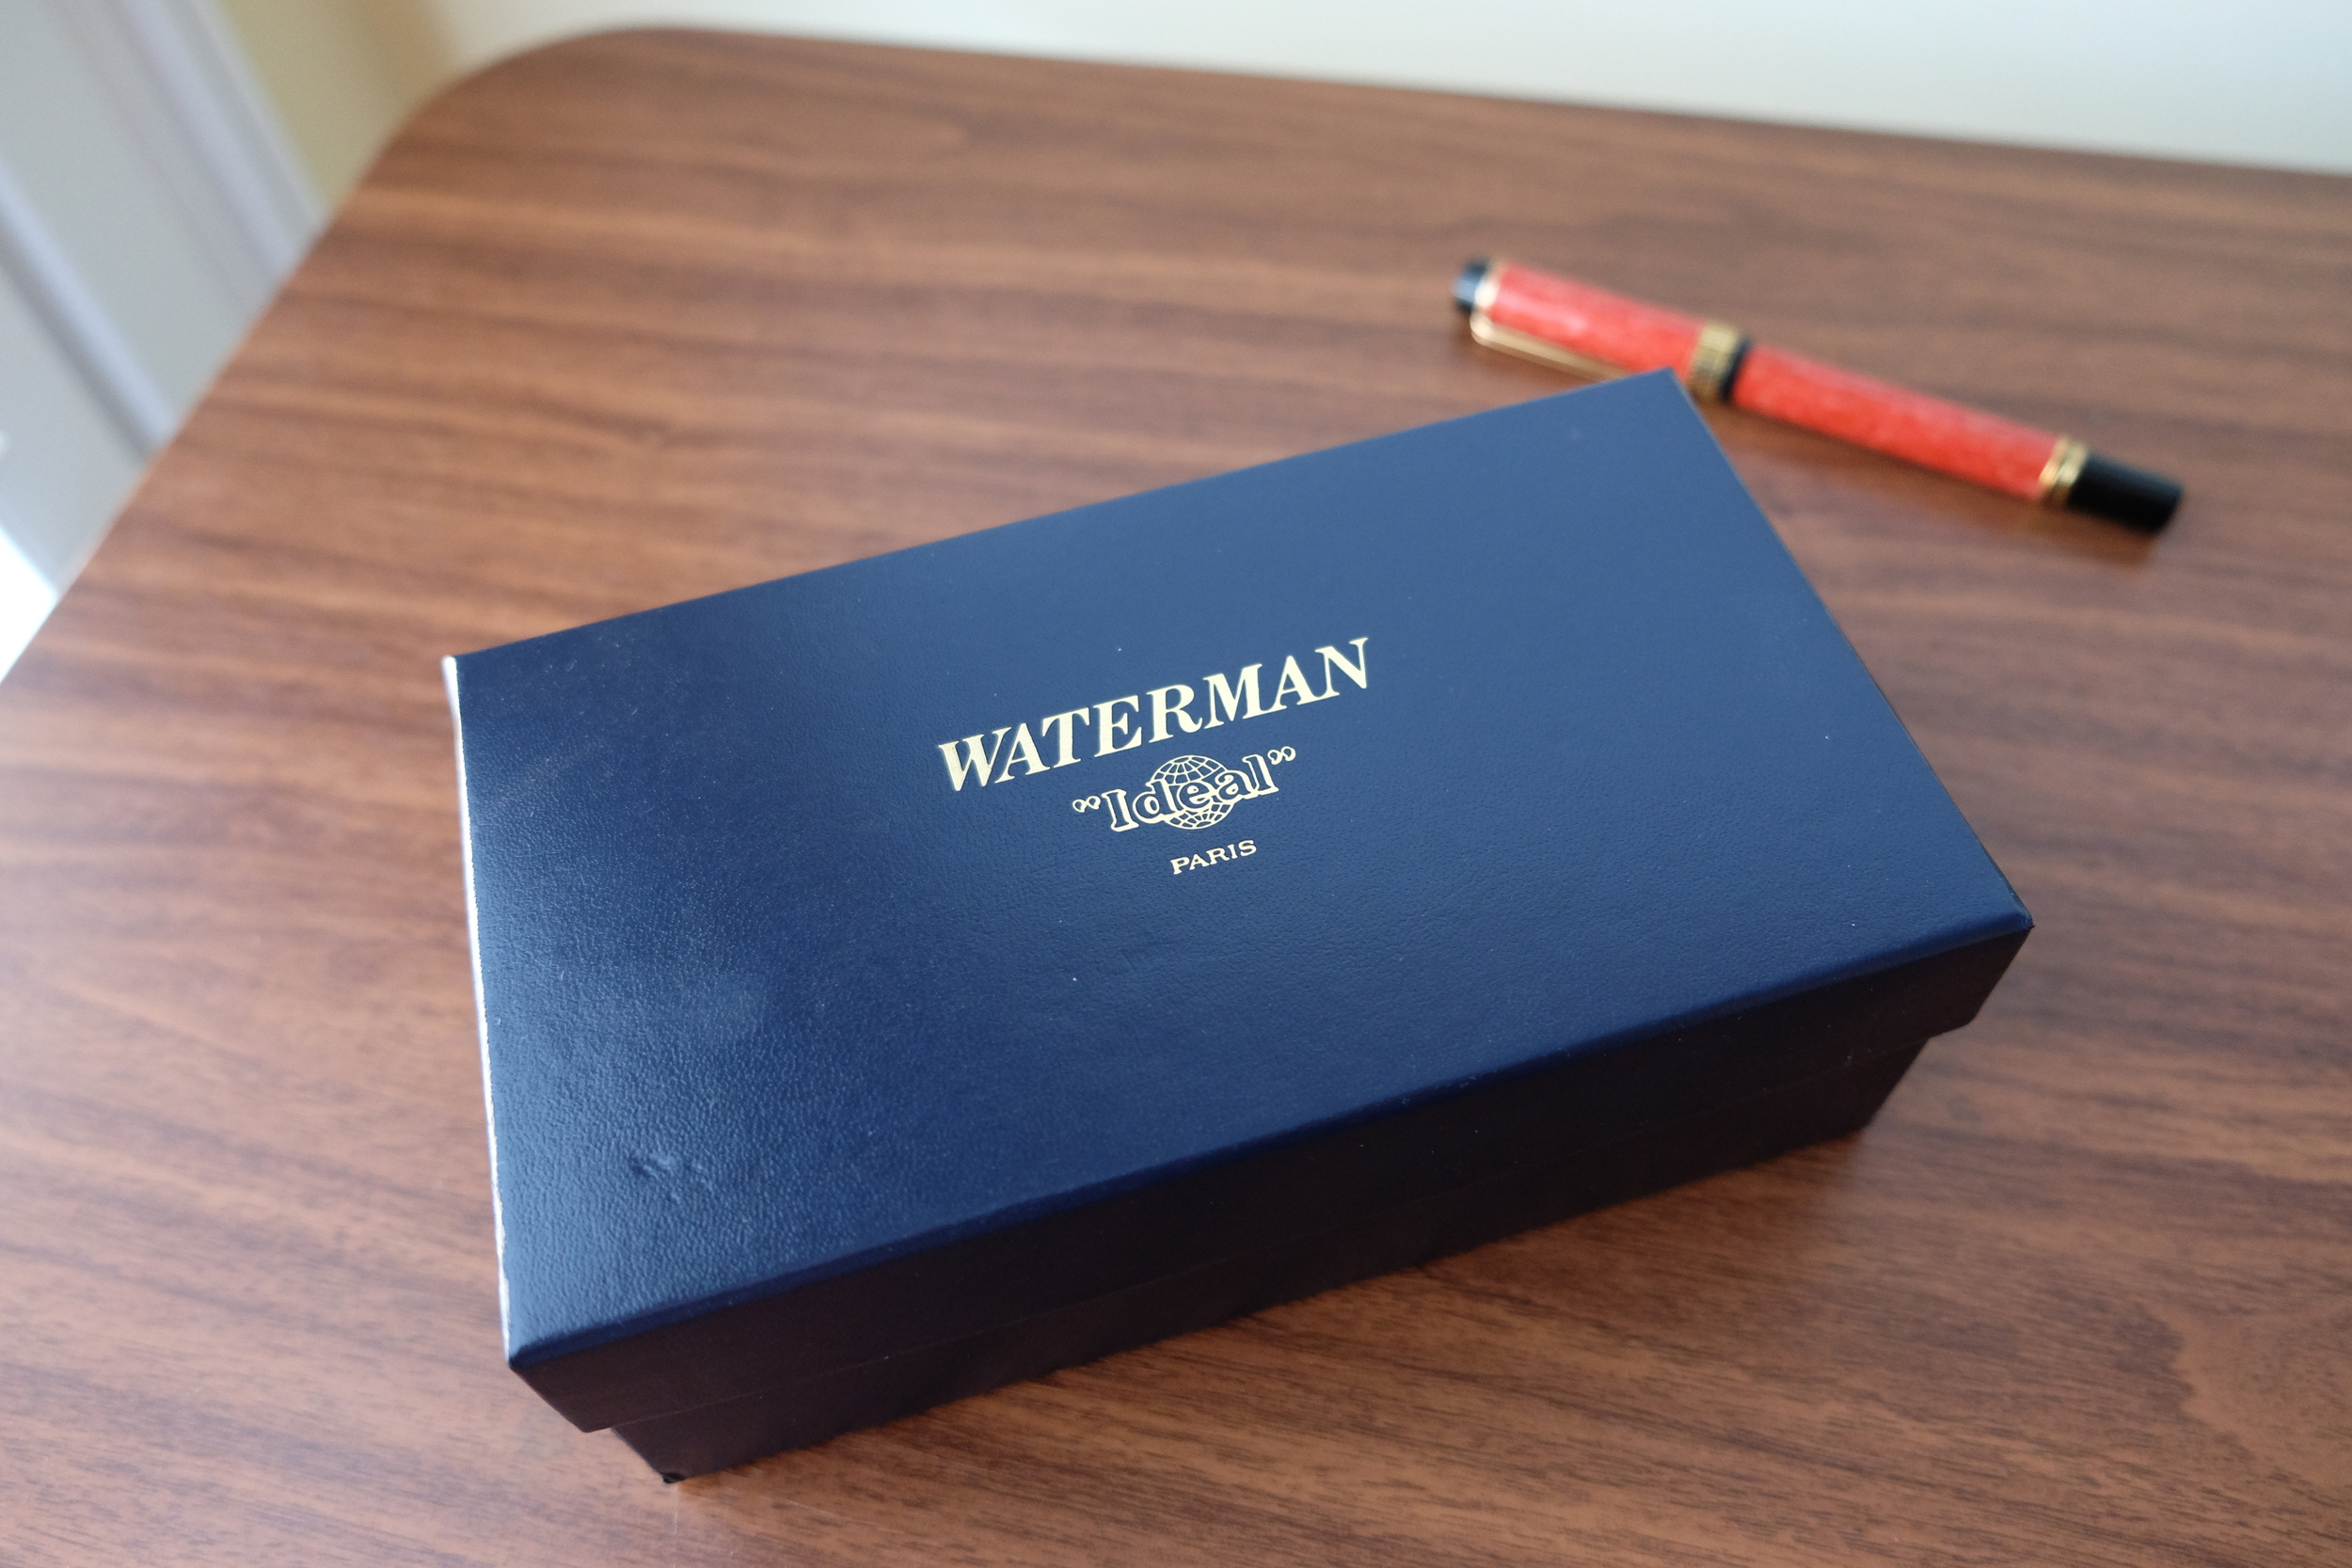 Waterman Man 100 Box